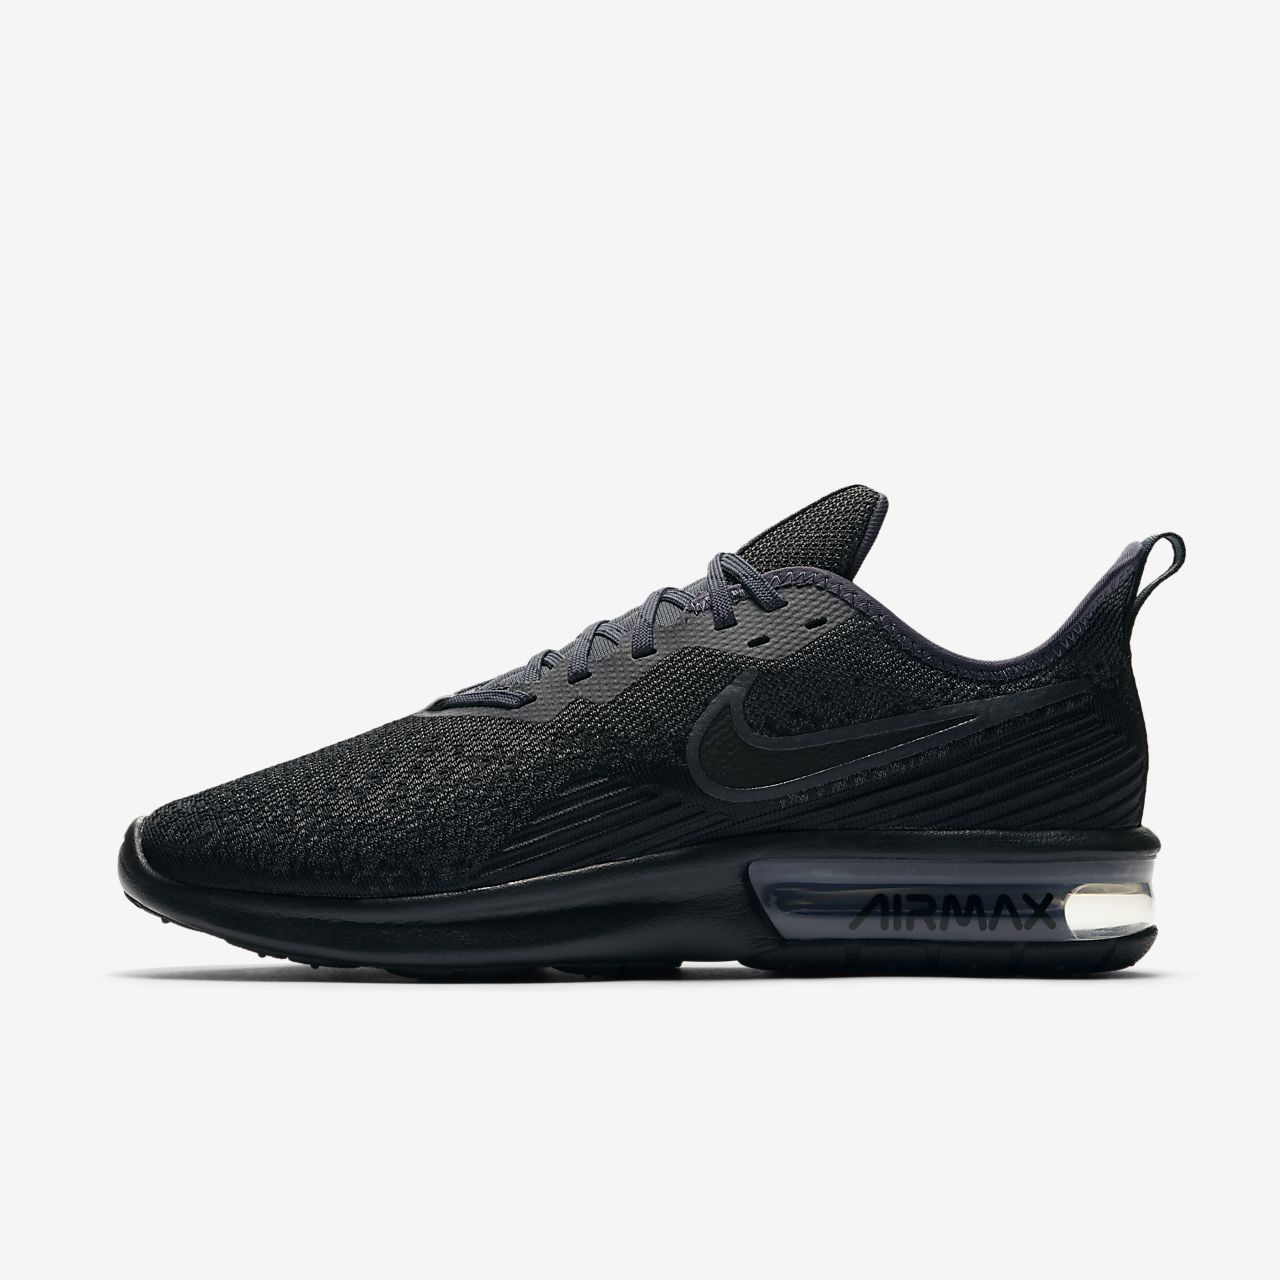 79fa1058465 Nike Air Max Sequent 4 Men s Shoe. Nike.com ZA